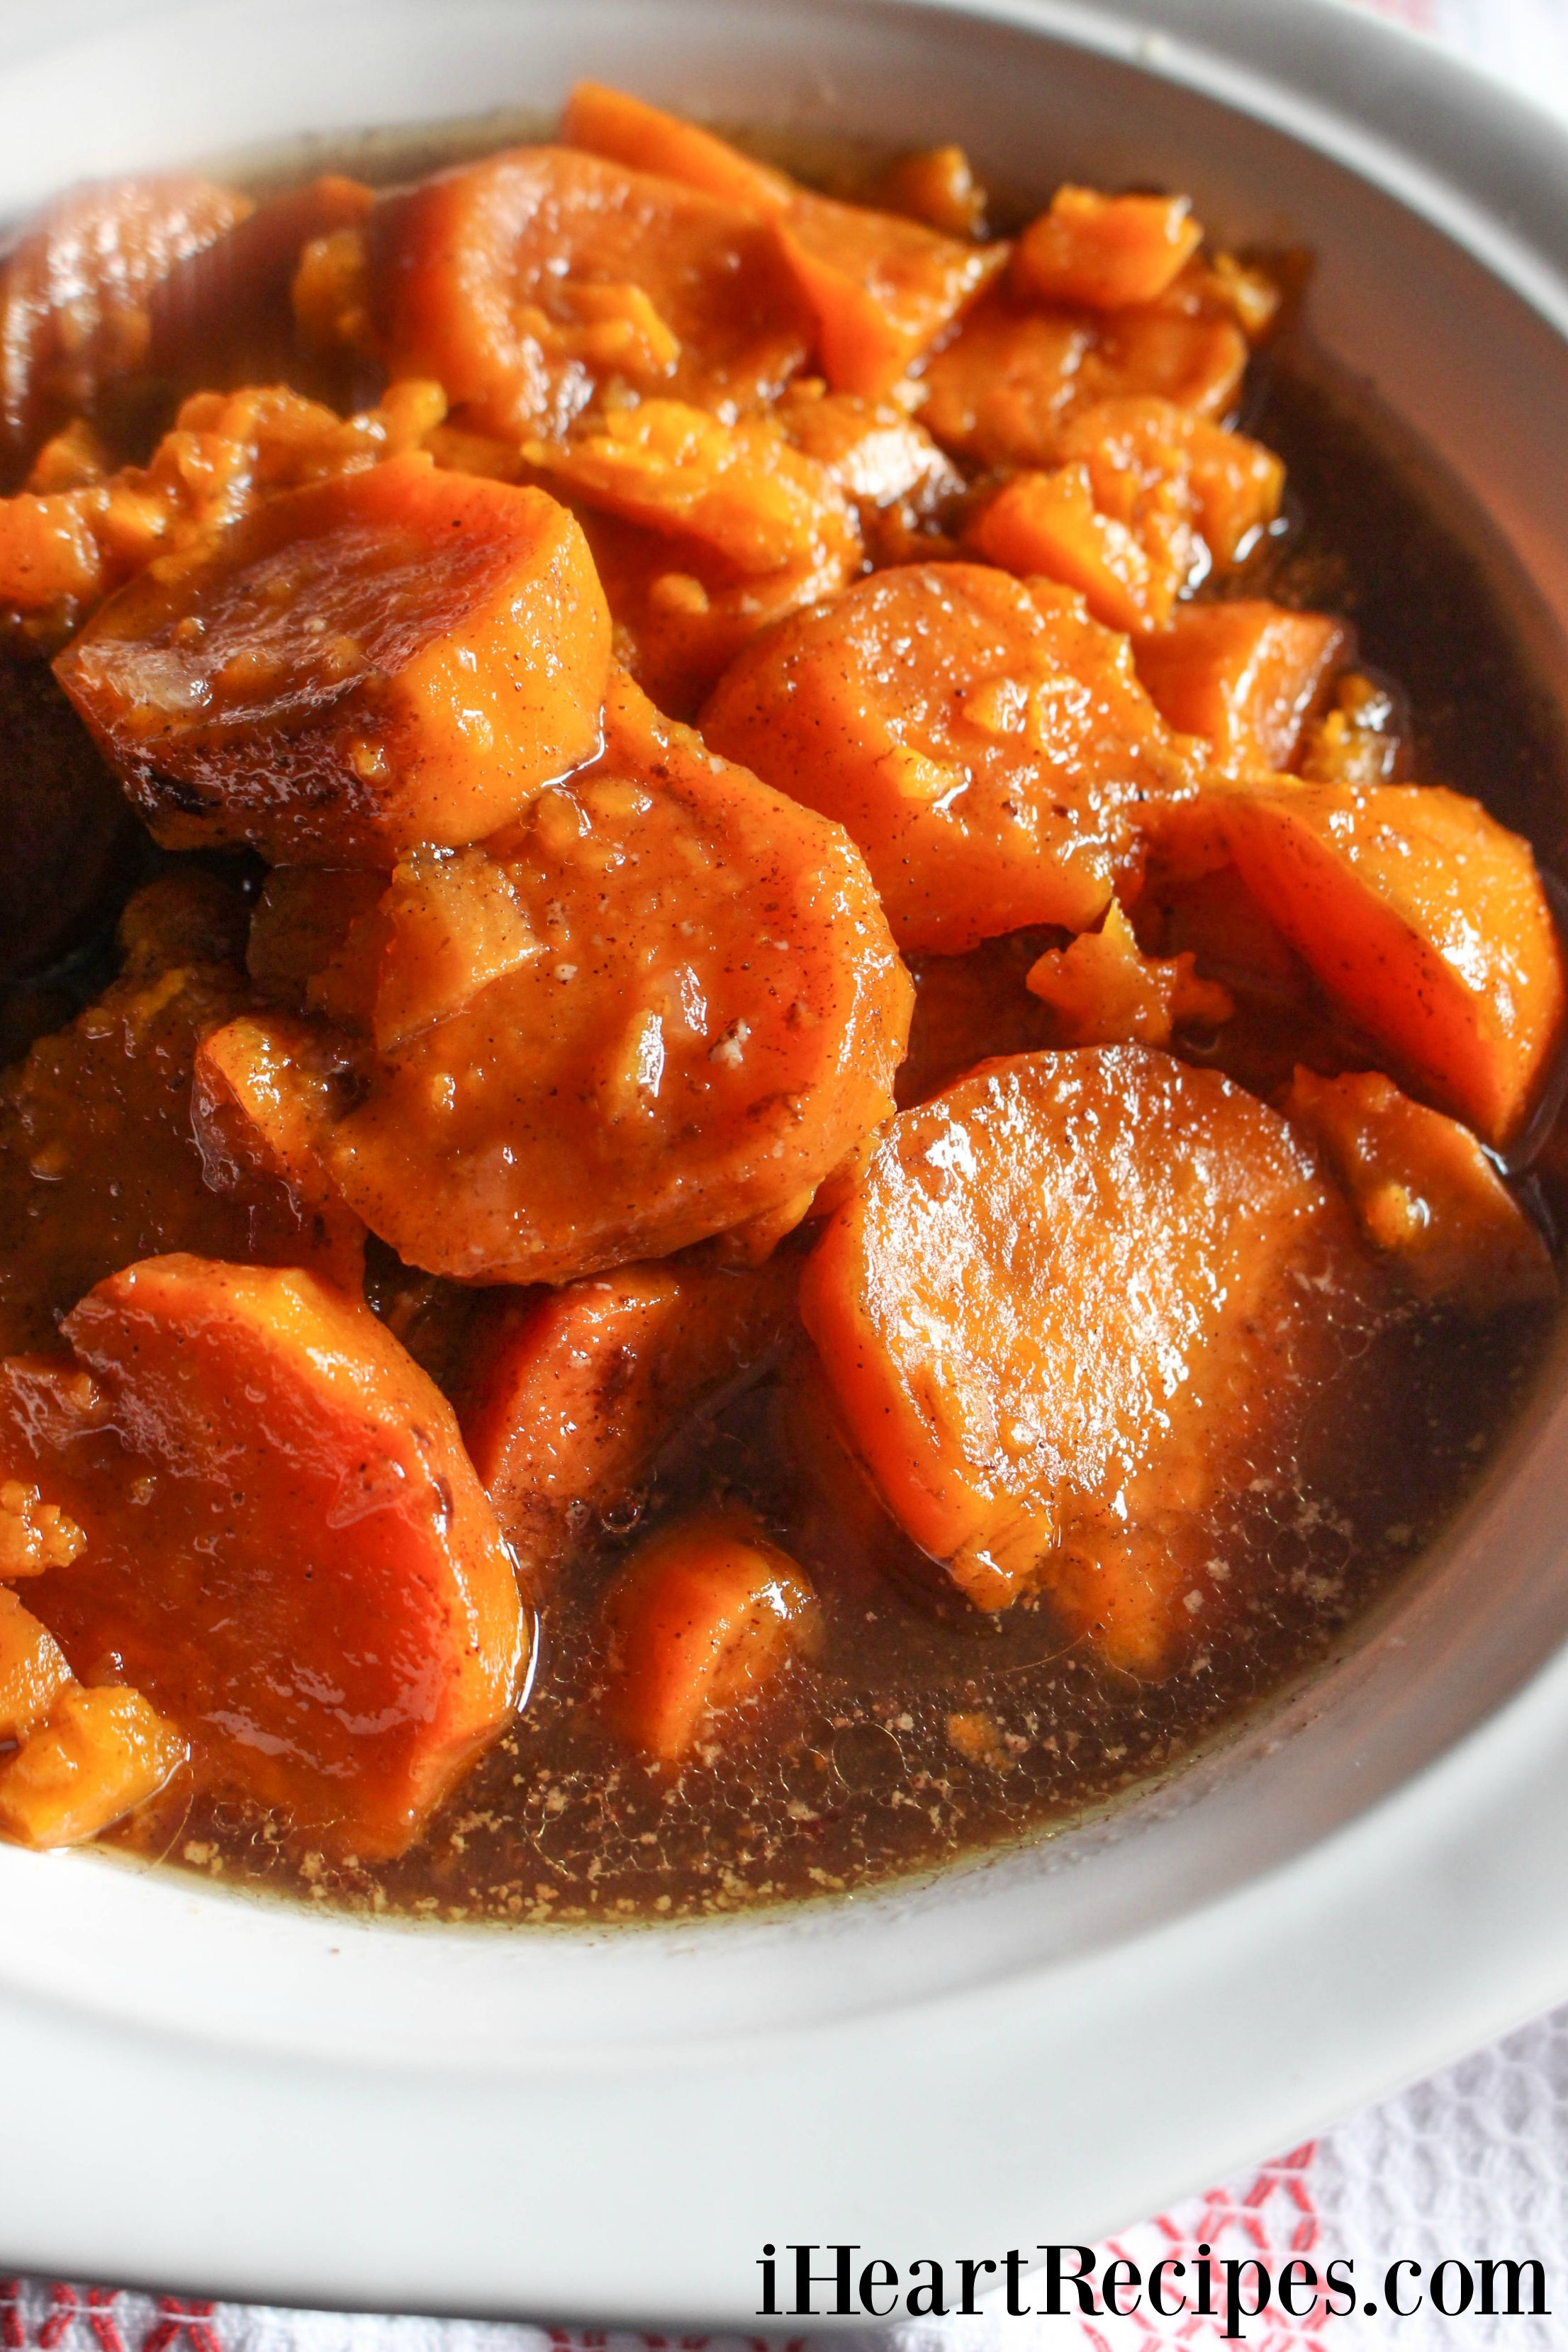 Slow Cooker Candied Yams | I Heart Recipes